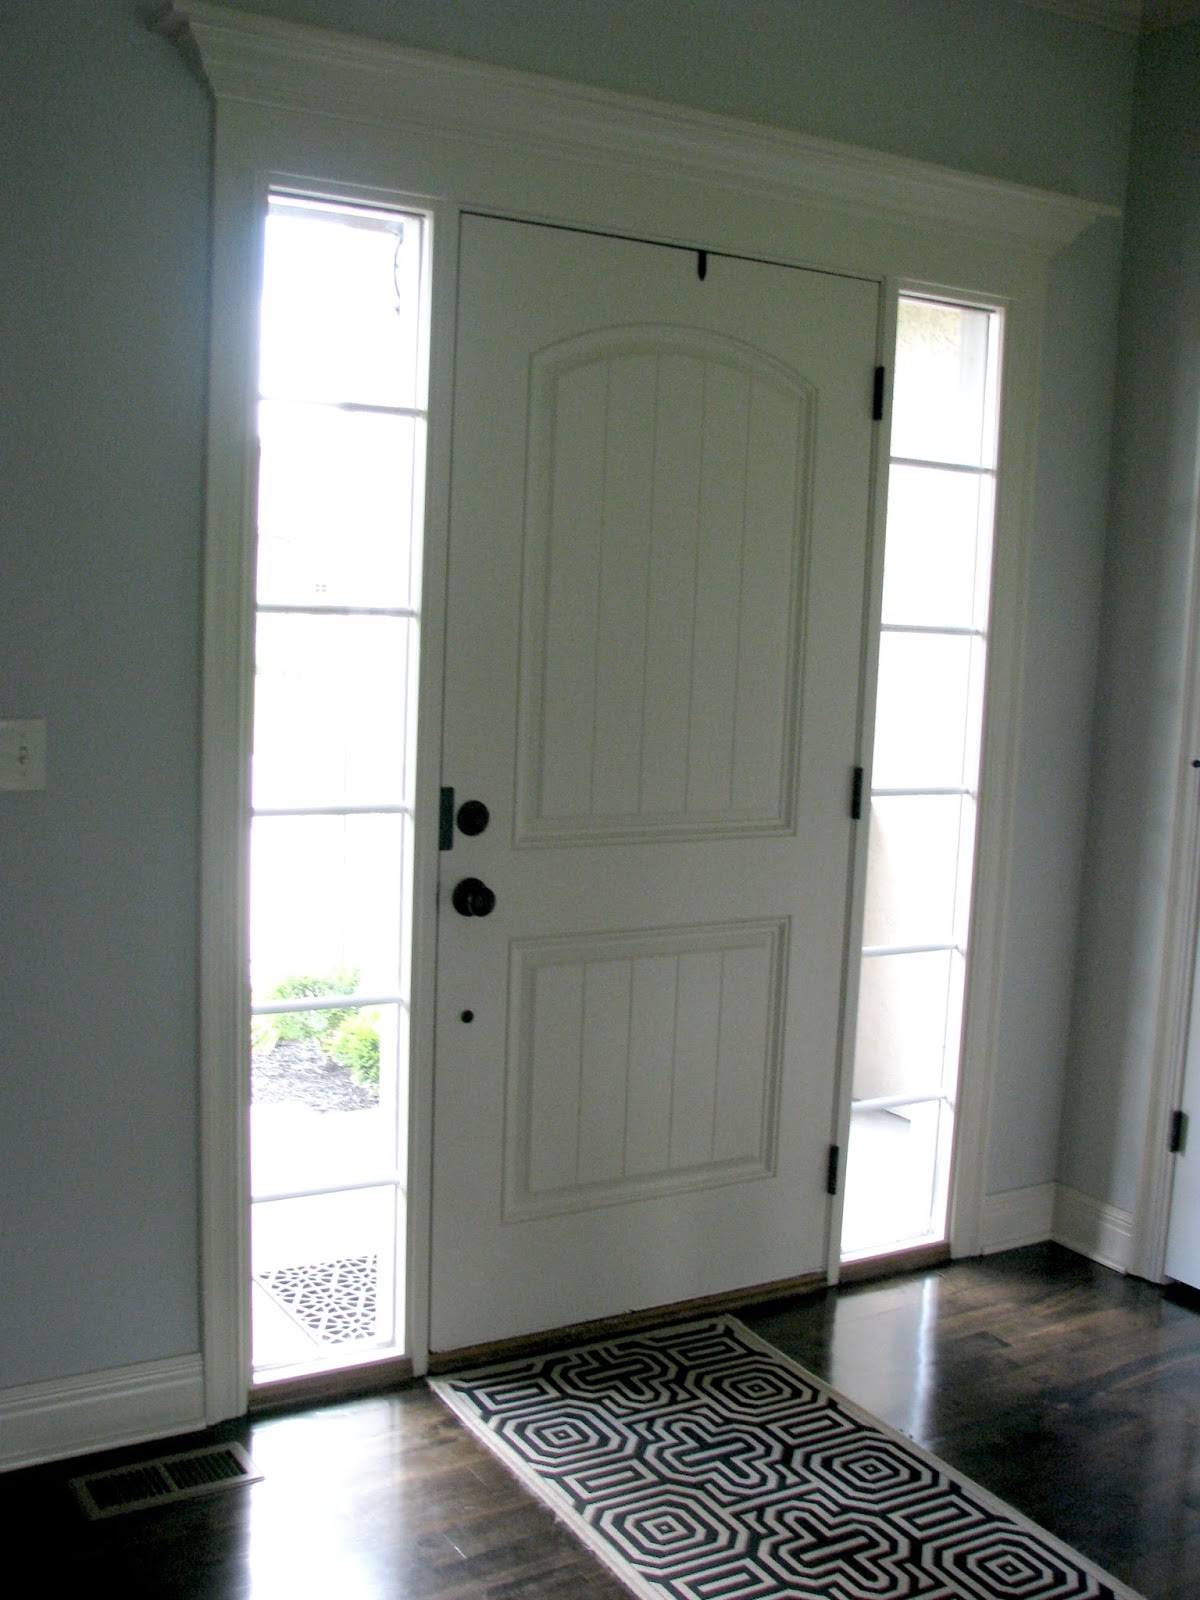 Life love larson black interior front door now that the door is black the moldings stand out and the door doesnt look so builder grade planetlyrics Images